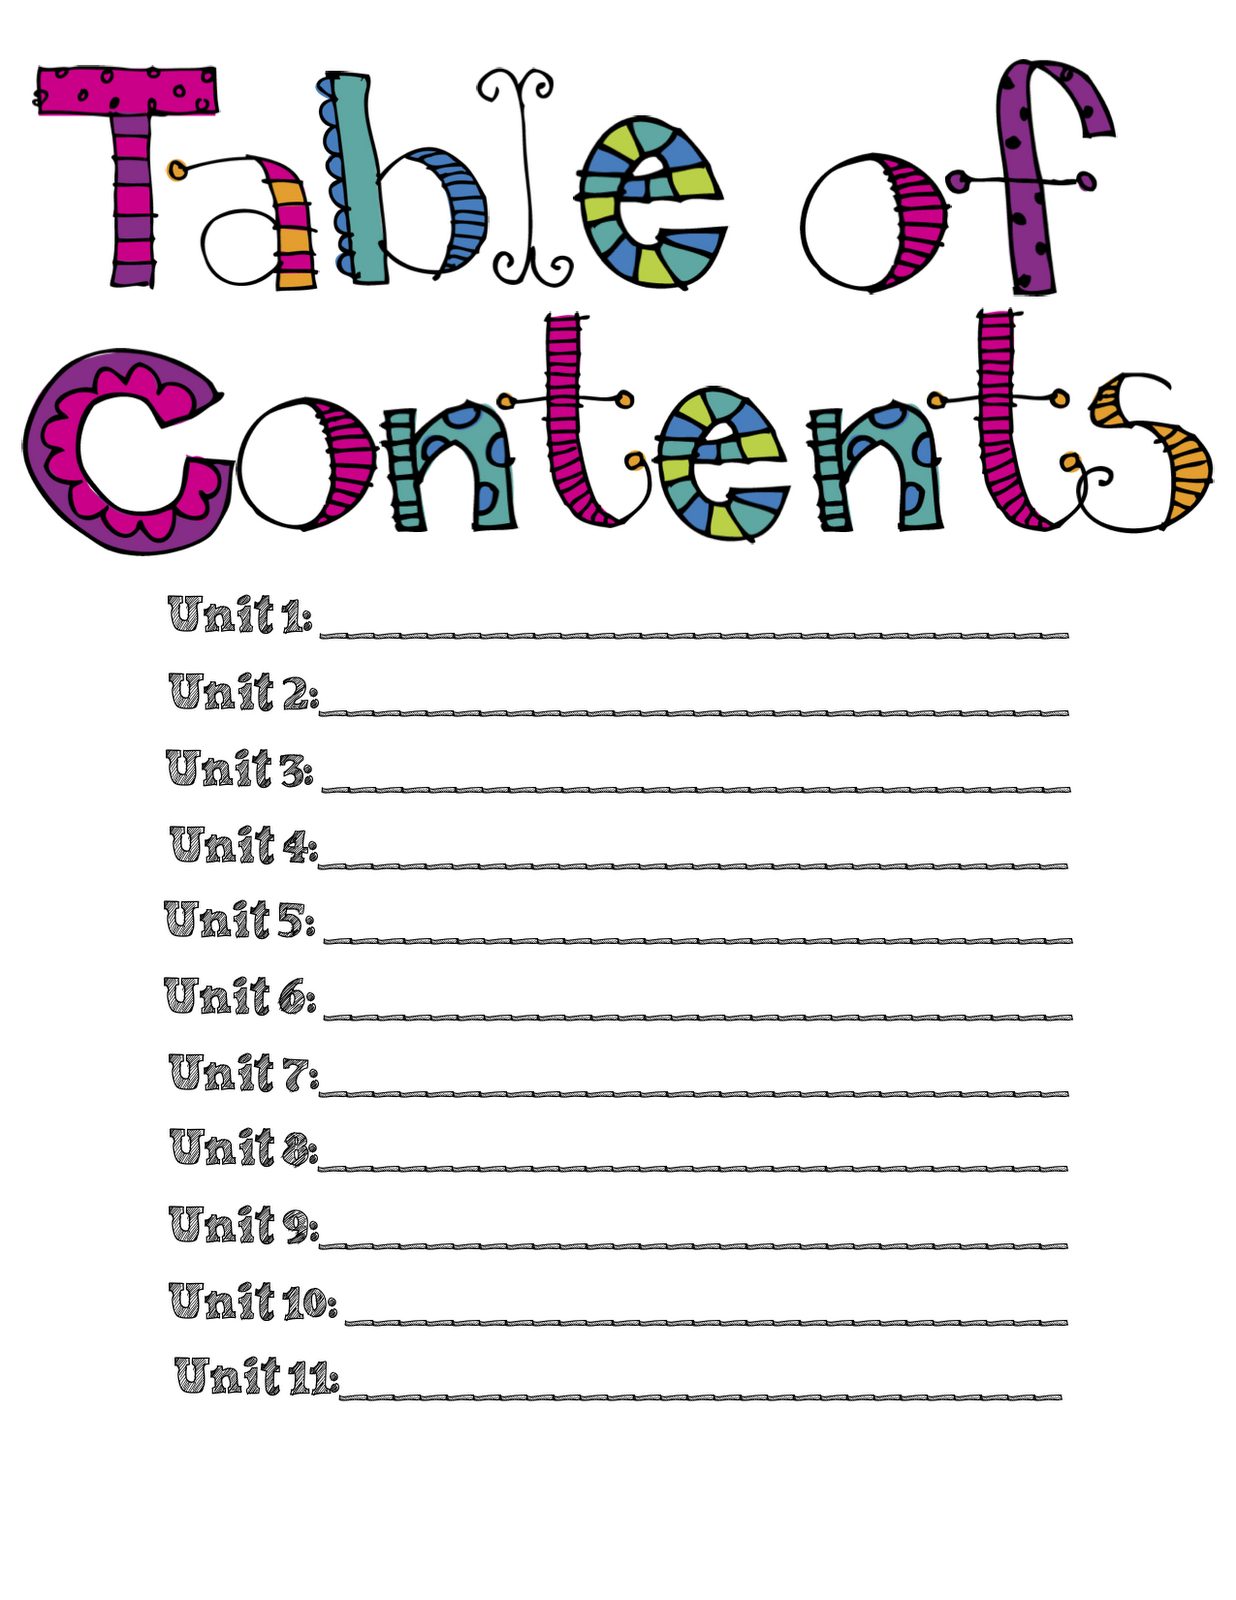 Table of contents clipart.